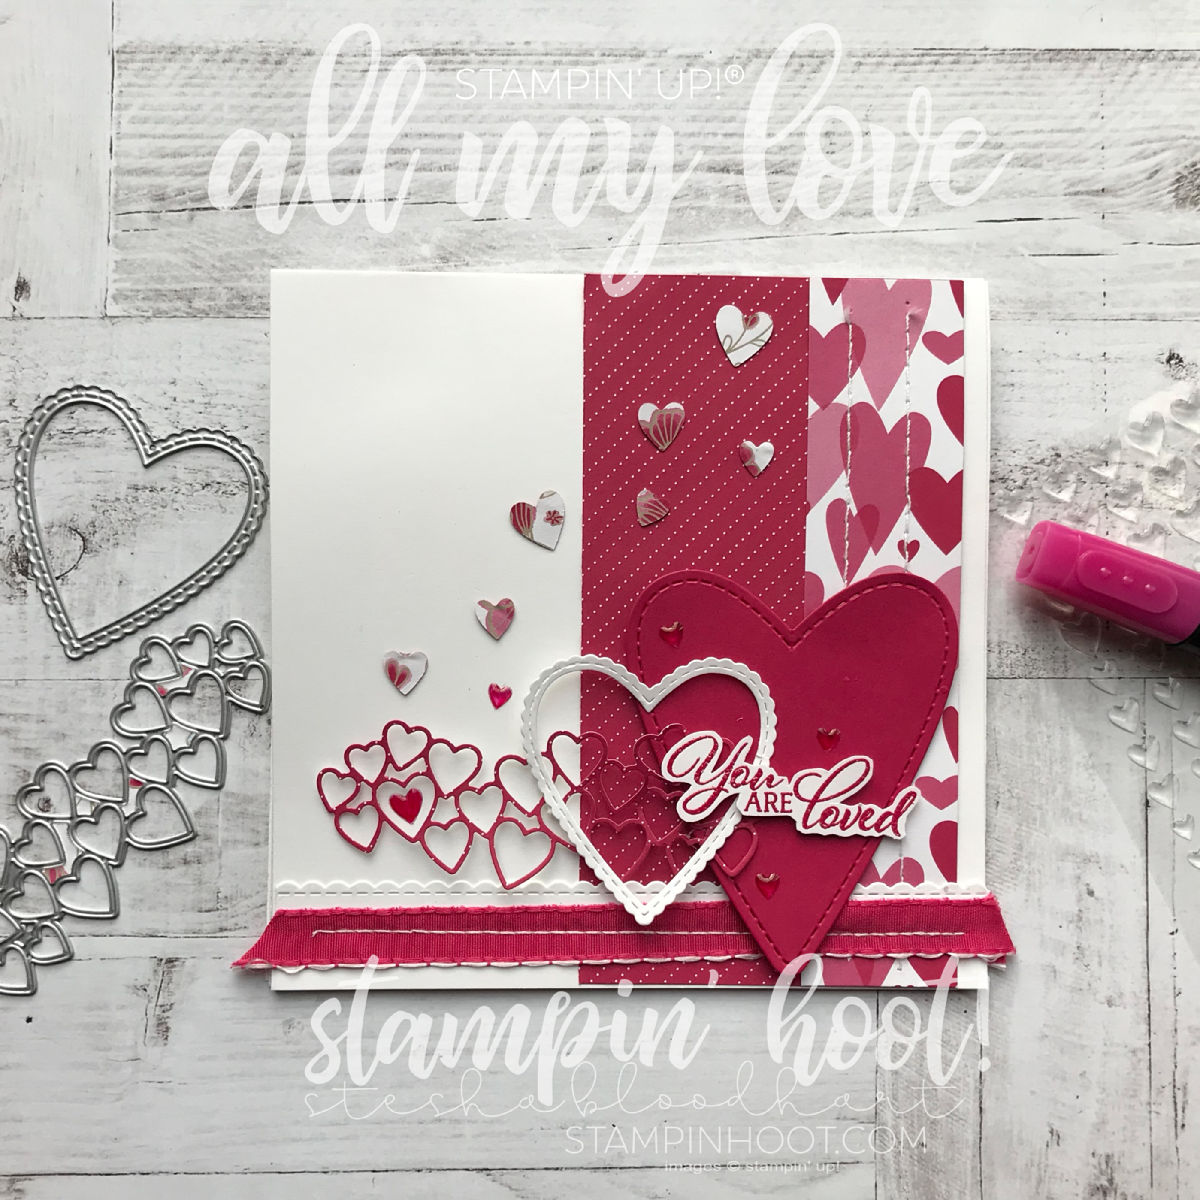 A Sneak Peek into the All My Love Suite from the 2019 Stampin' Up! Occasions CATALOG. Valentines Card created by Stesha Bloodhart, Stampin' Hoot! #steshabloodhart #stampinhoot